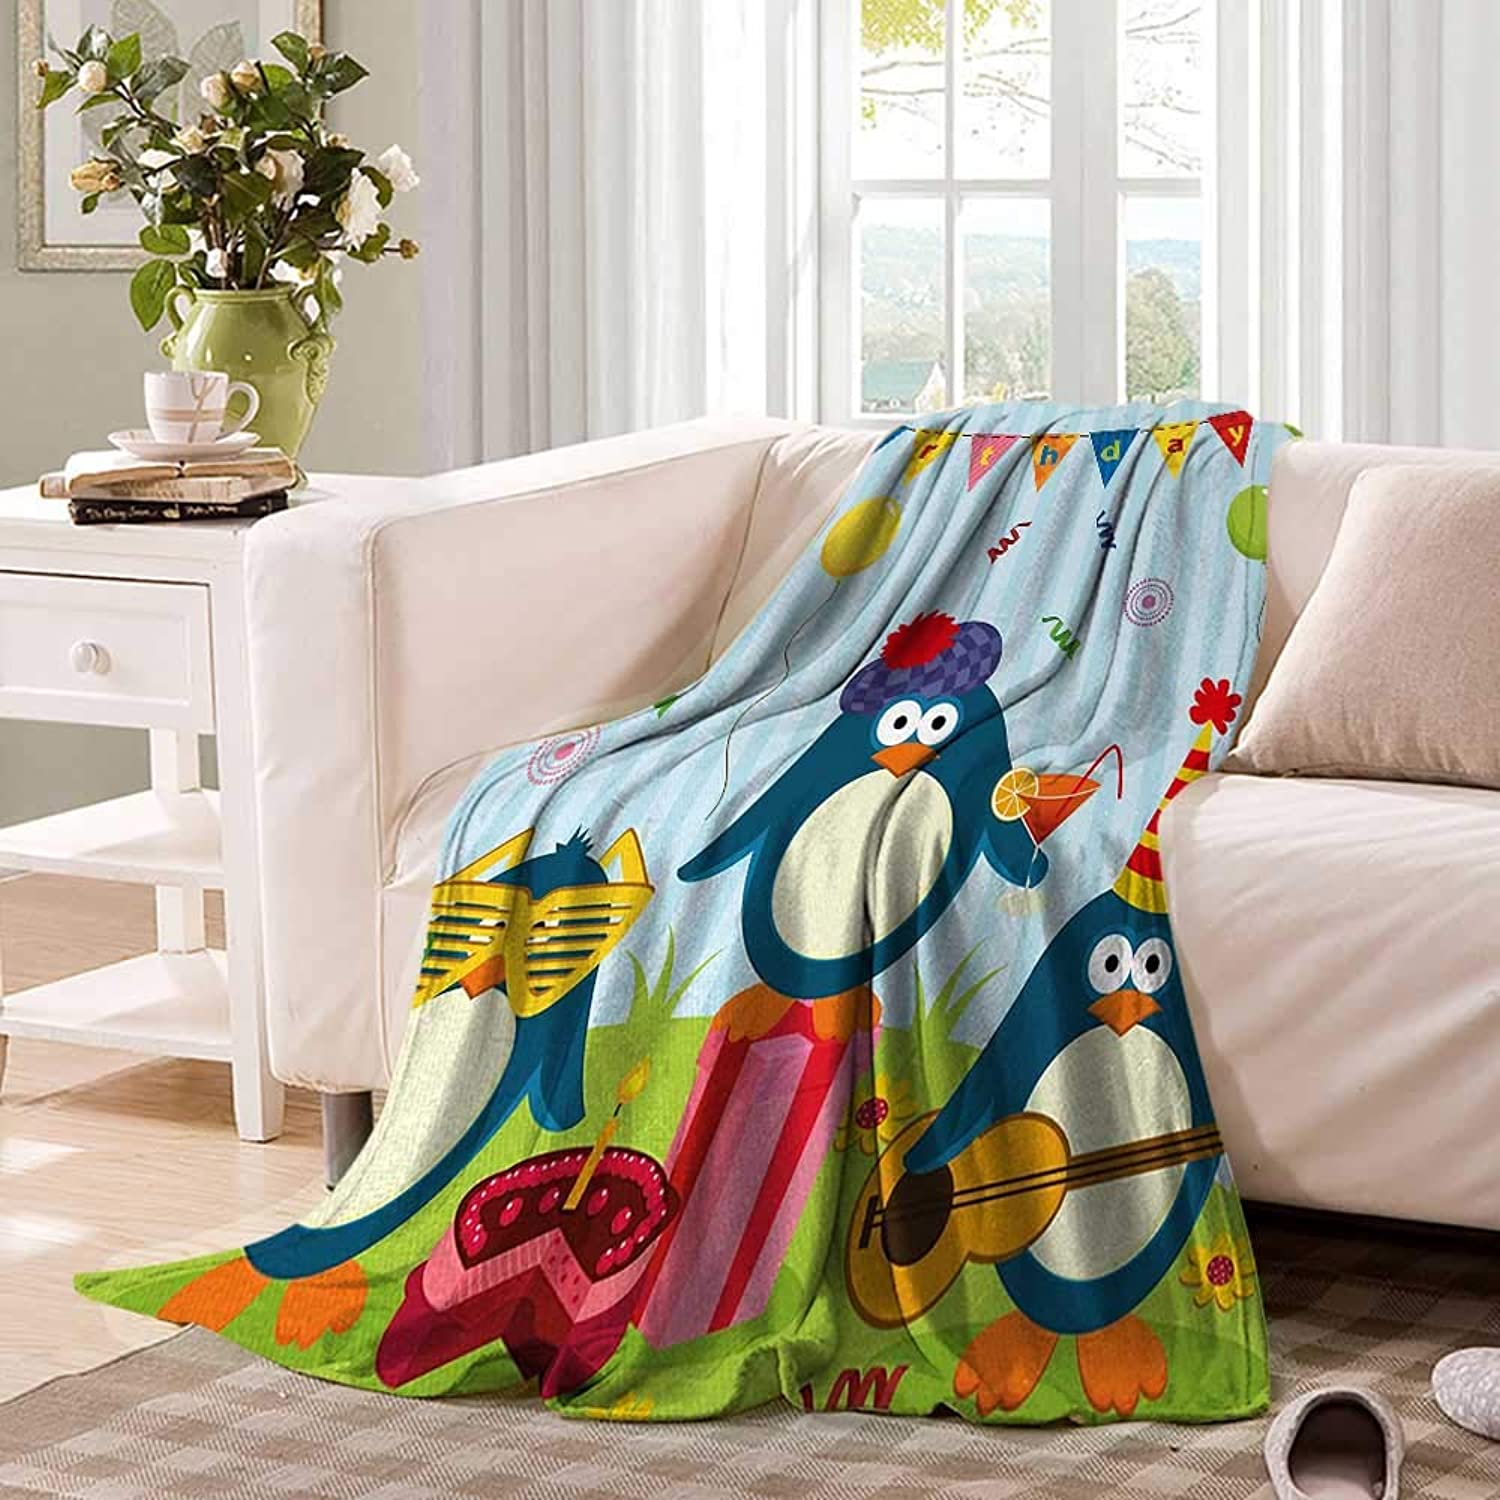 Kids BirthdayFlannel Single Student blanketCartoon Style Penguin Party with Flags Cakes and Surprise BoxStudent Blanket 60 x50  Light bluee and Fern Green